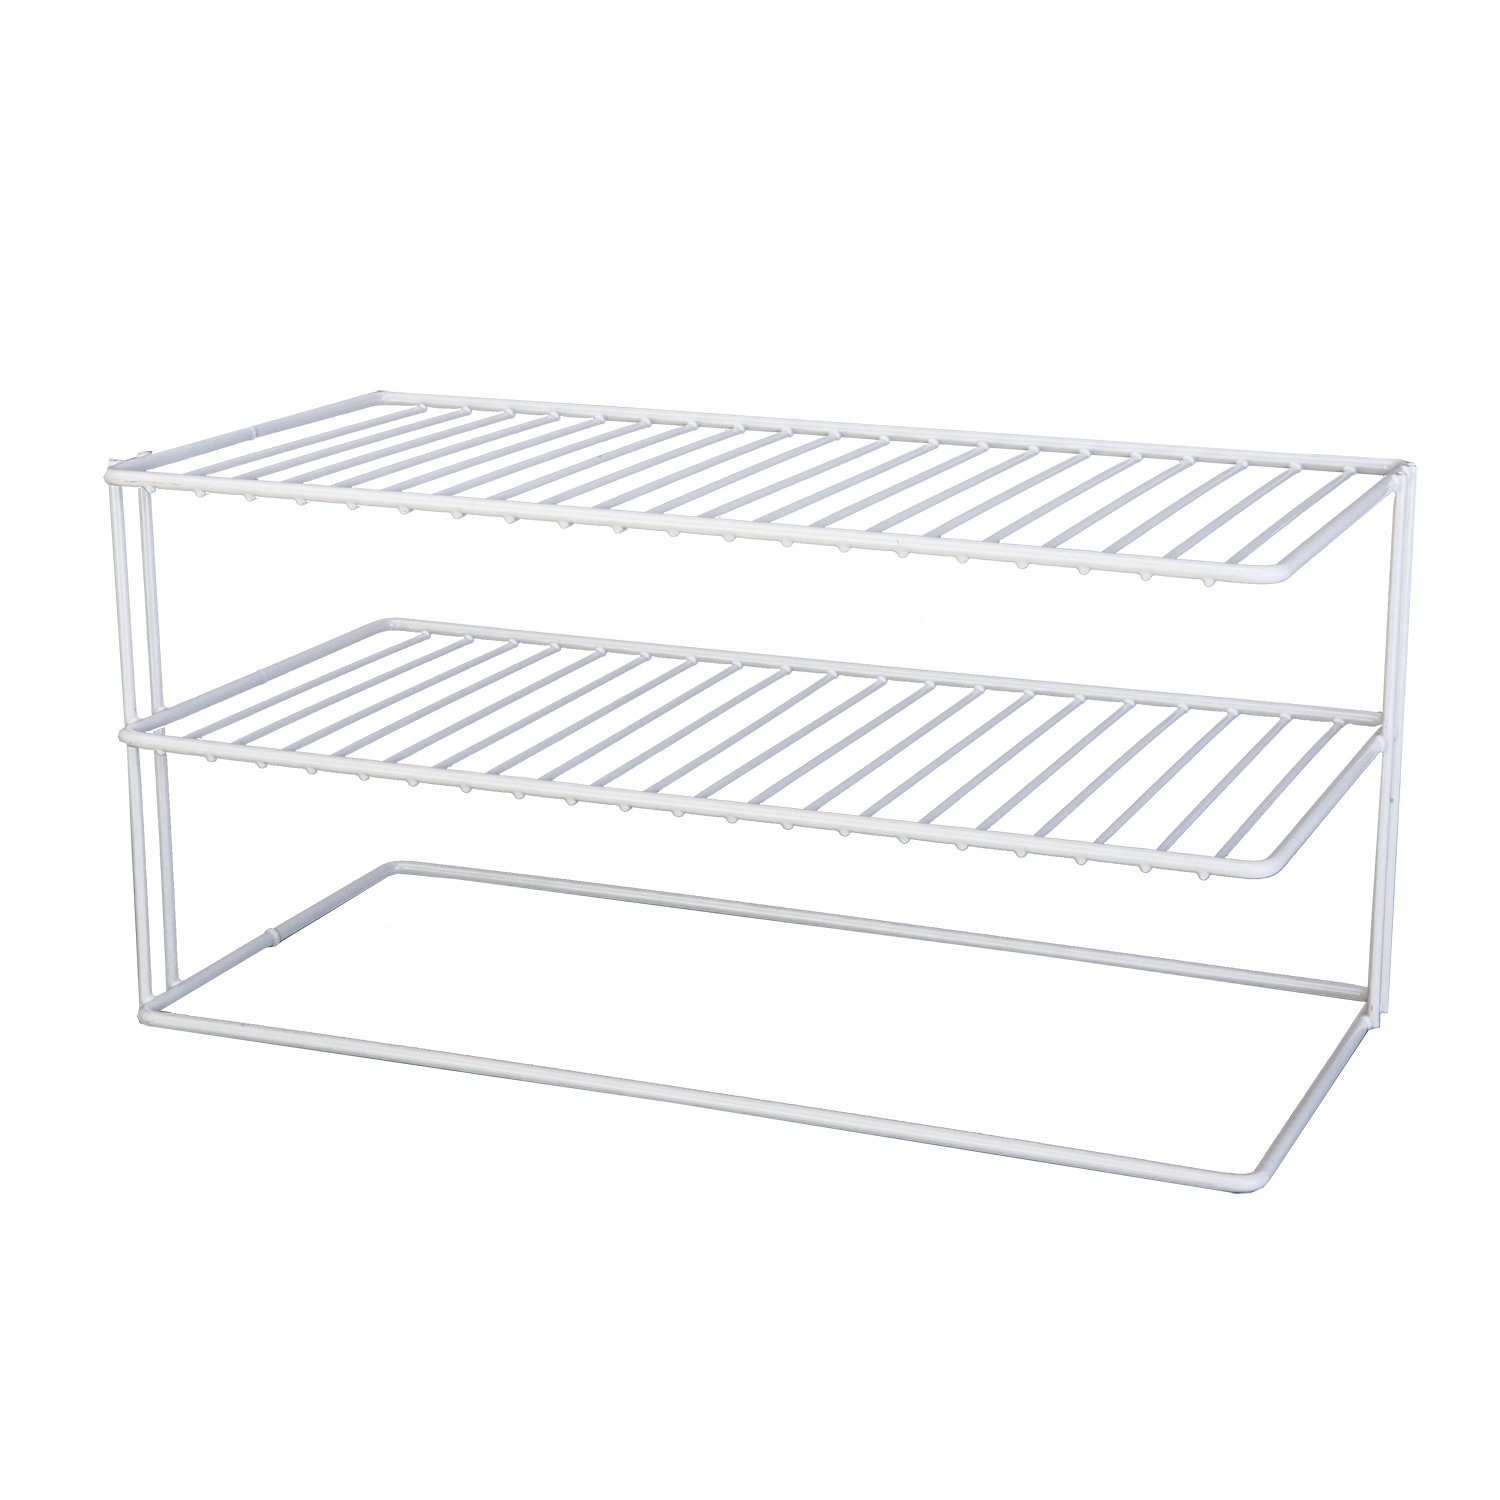 Grayline 40126, Large Two Shelf Organizer, White